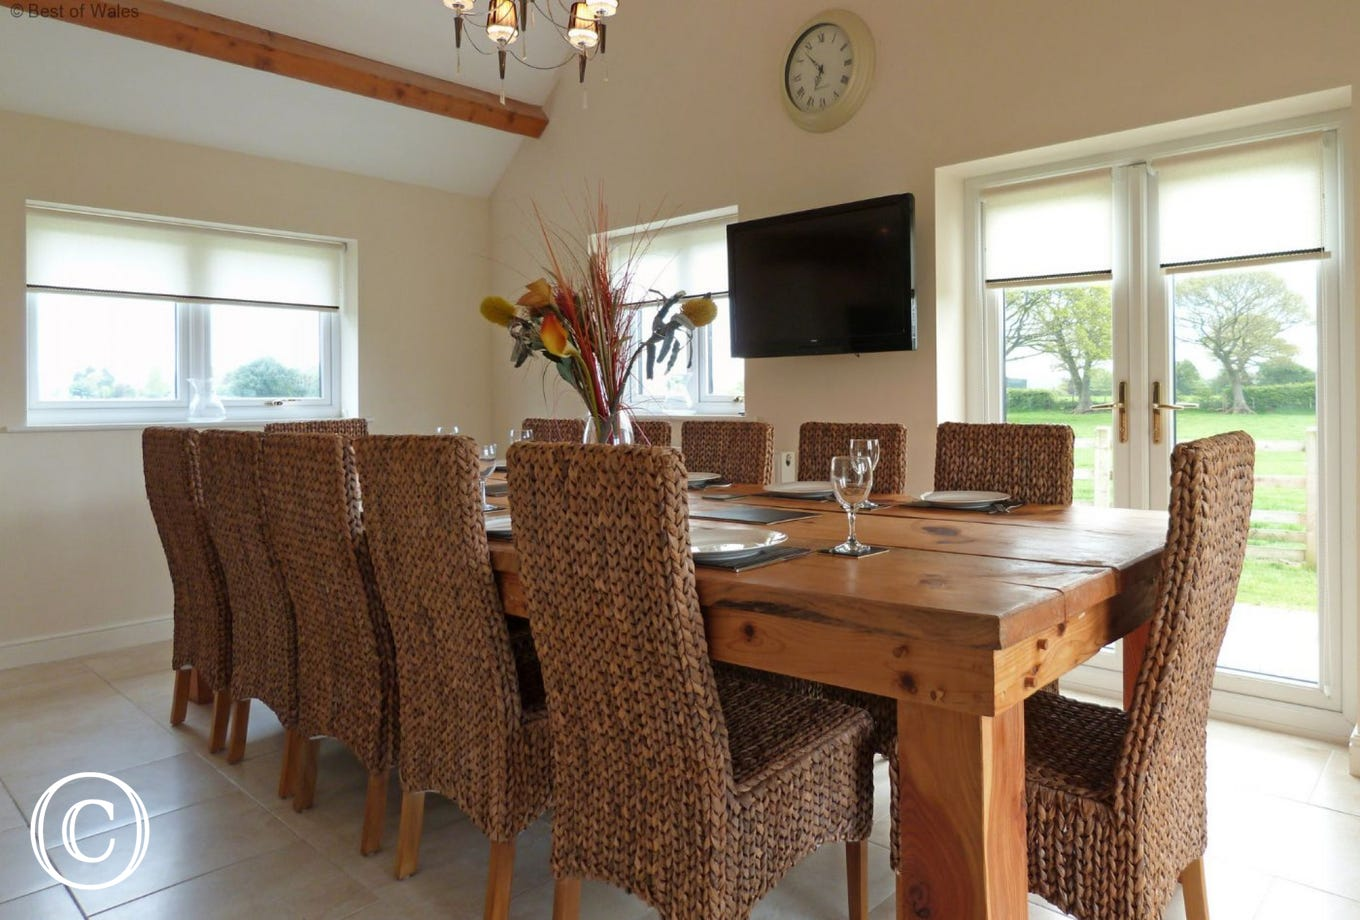 Large dining table with wall mounted TV and stunning views